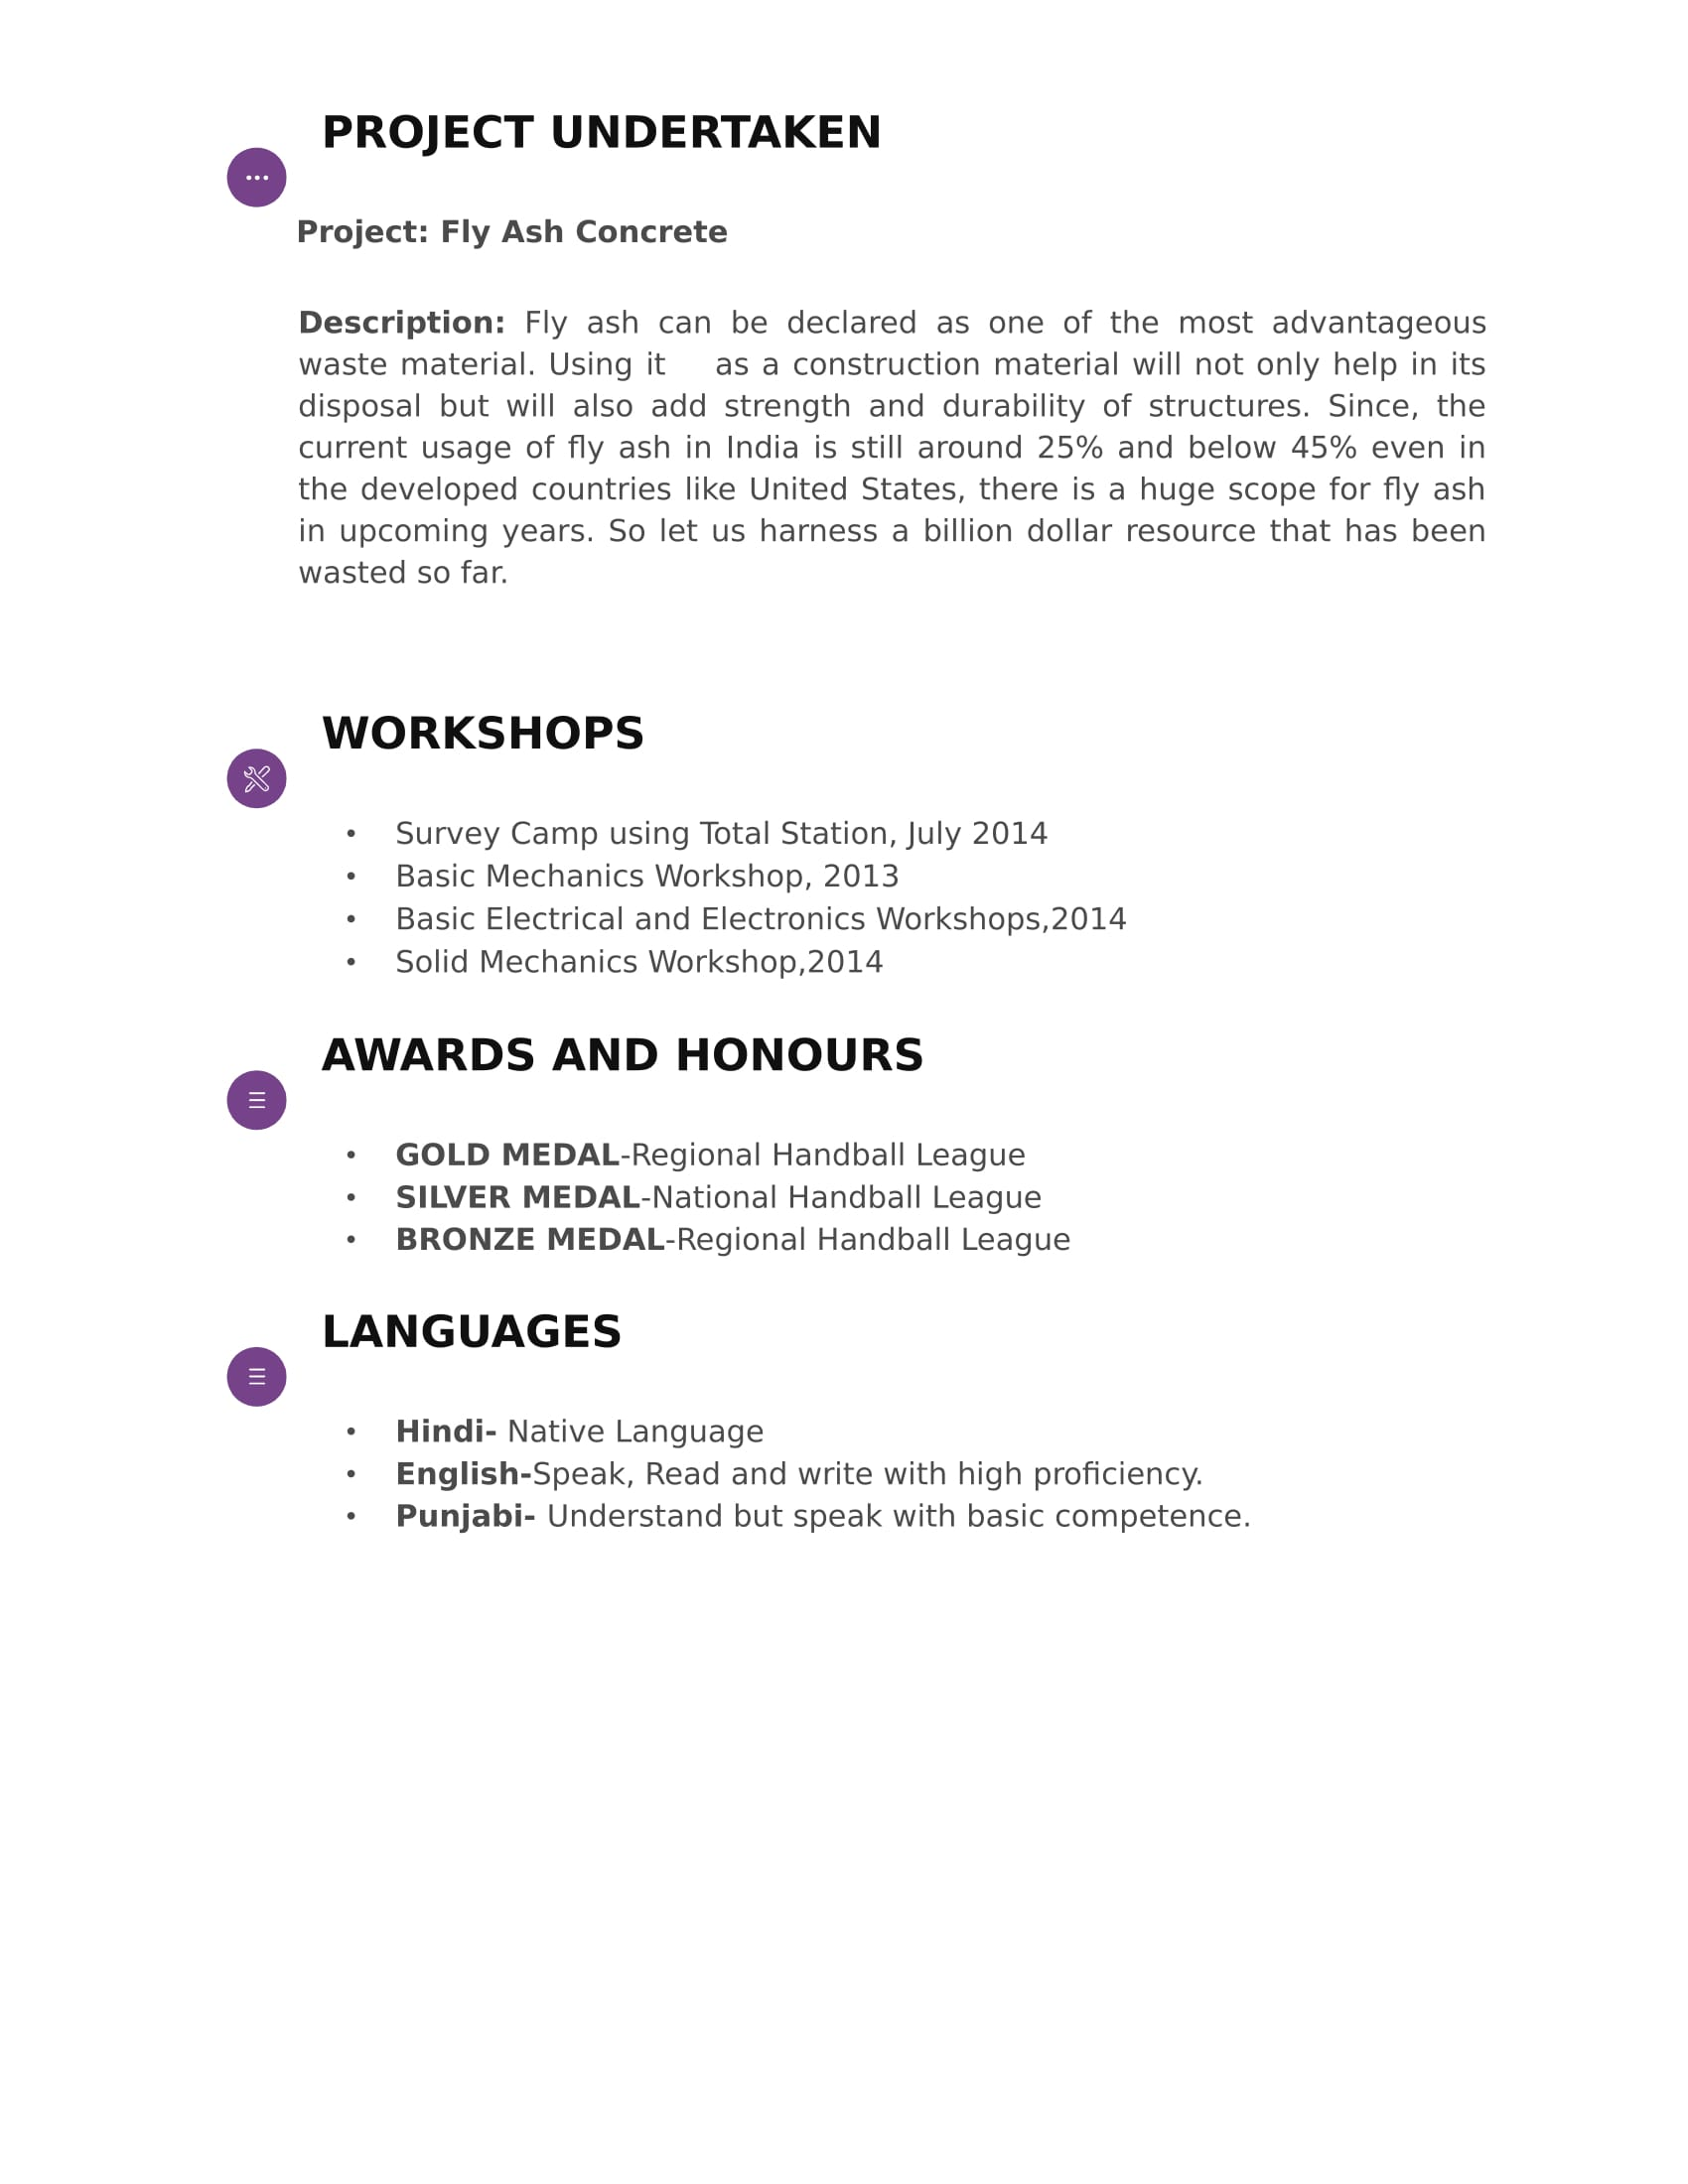 Resume Templates For Civil Engineer Freshers - Download Free